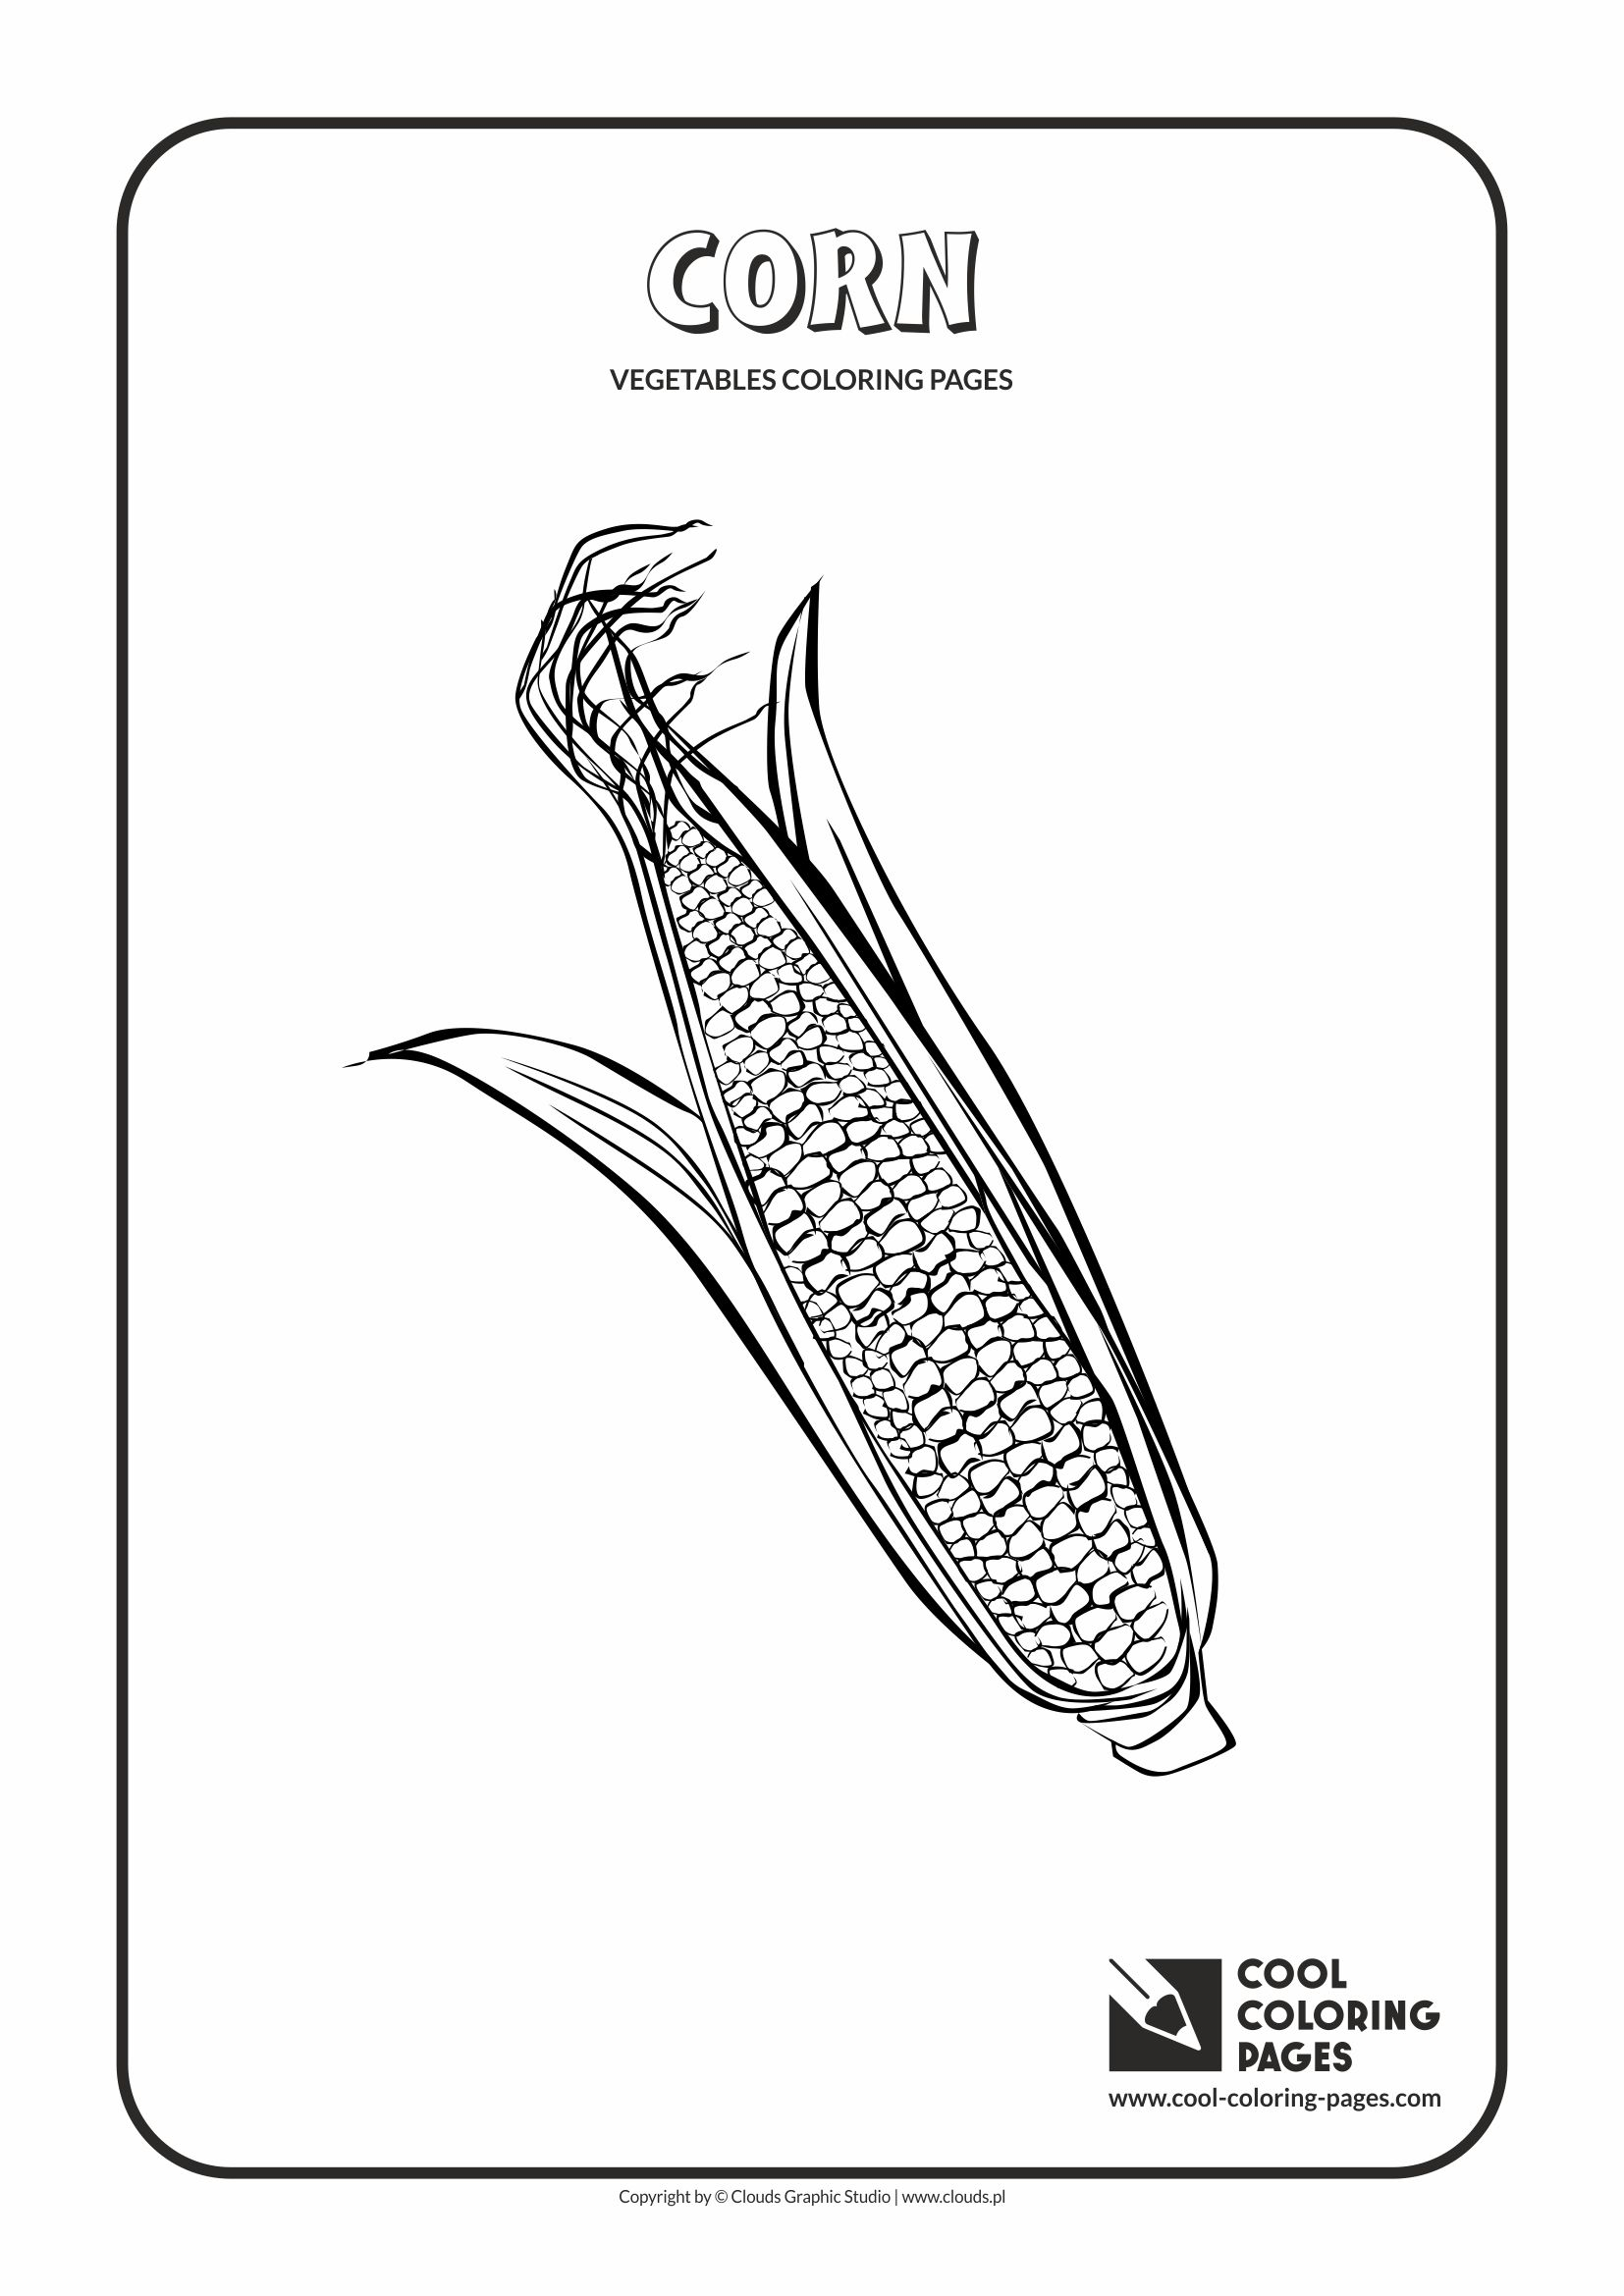 Cool Coloring Pages - Plants / Corn / Coloring page with corn